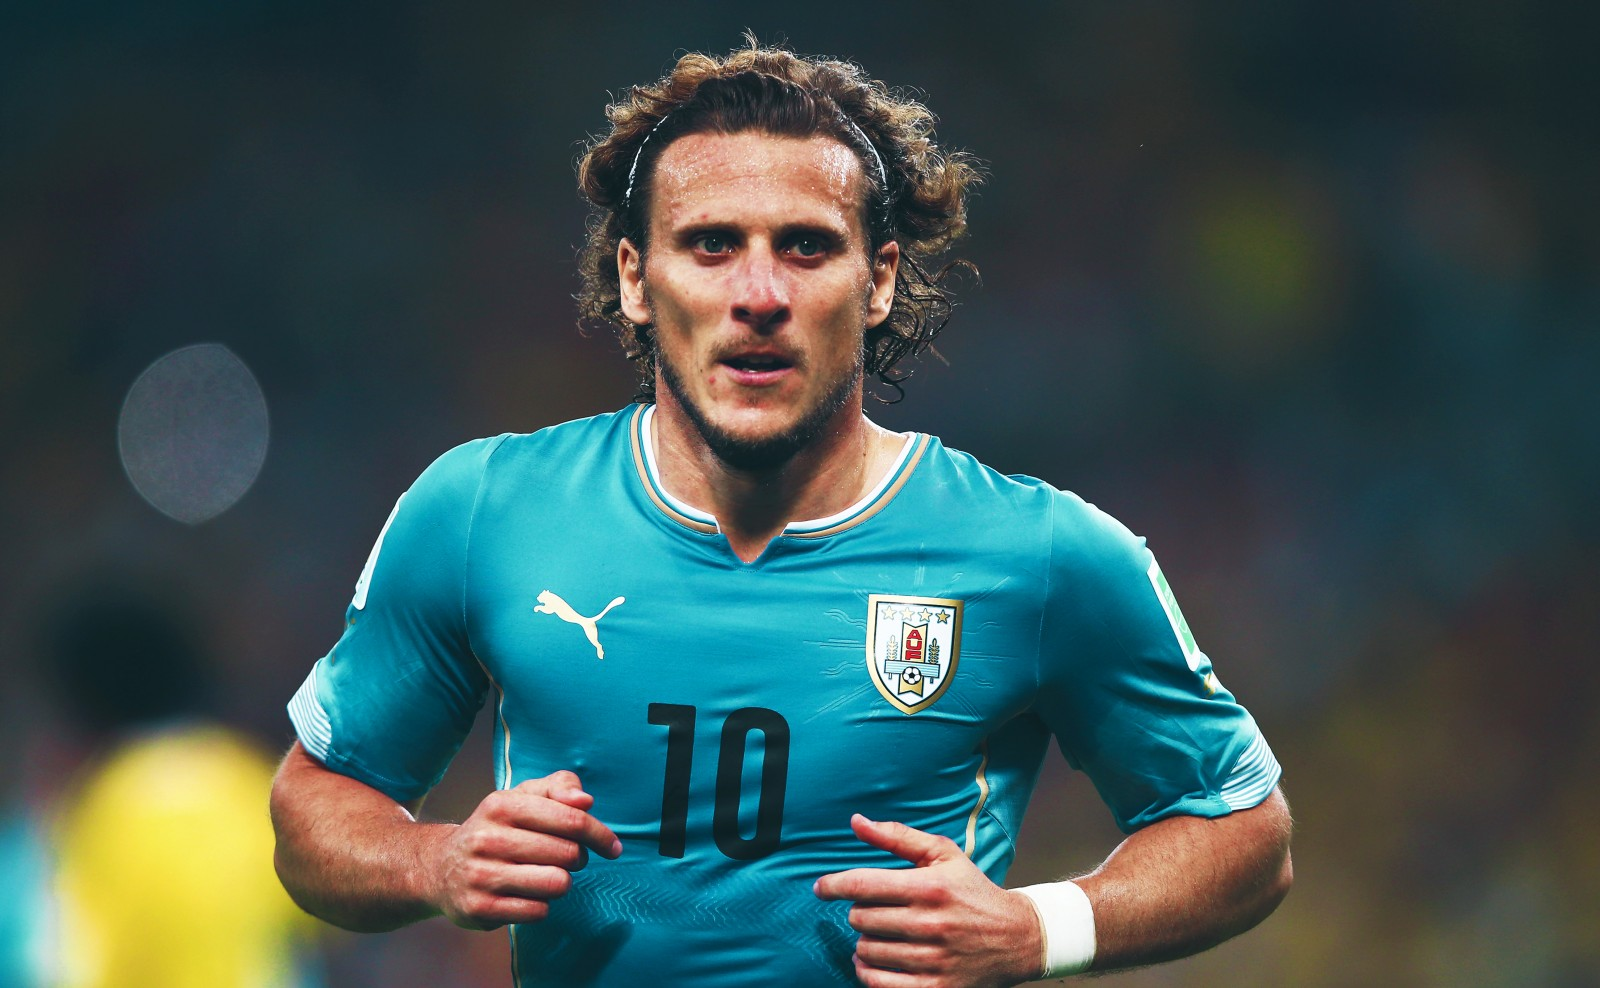 Diego Forlan Football Player